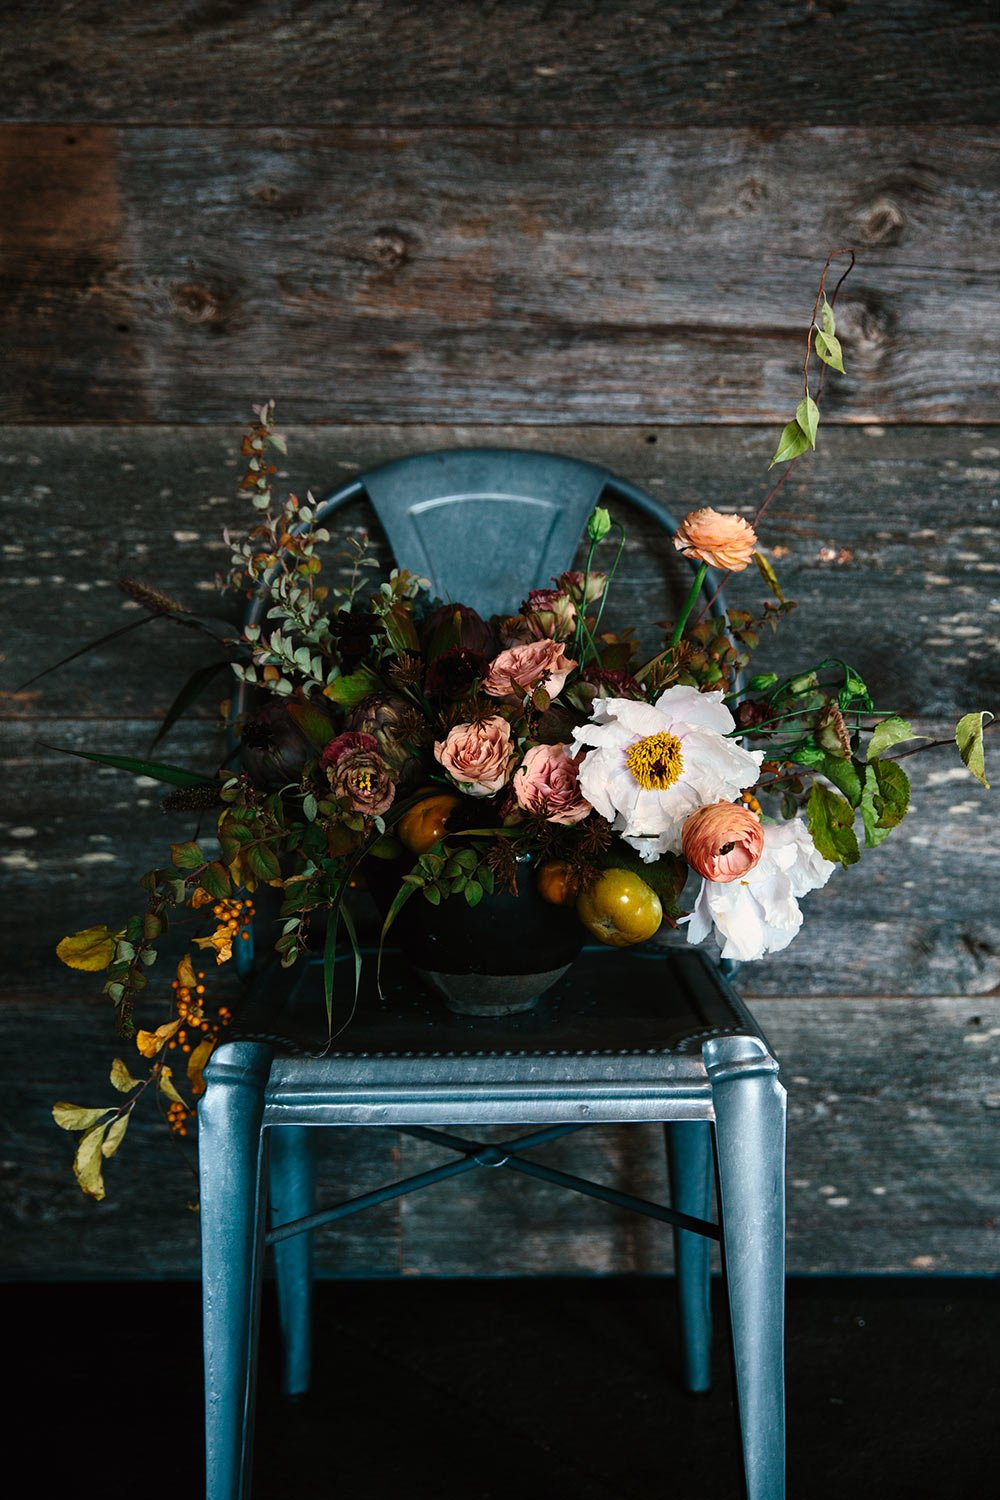 Fall bouquet with pinks and greens in a short vase on a metal dining chair